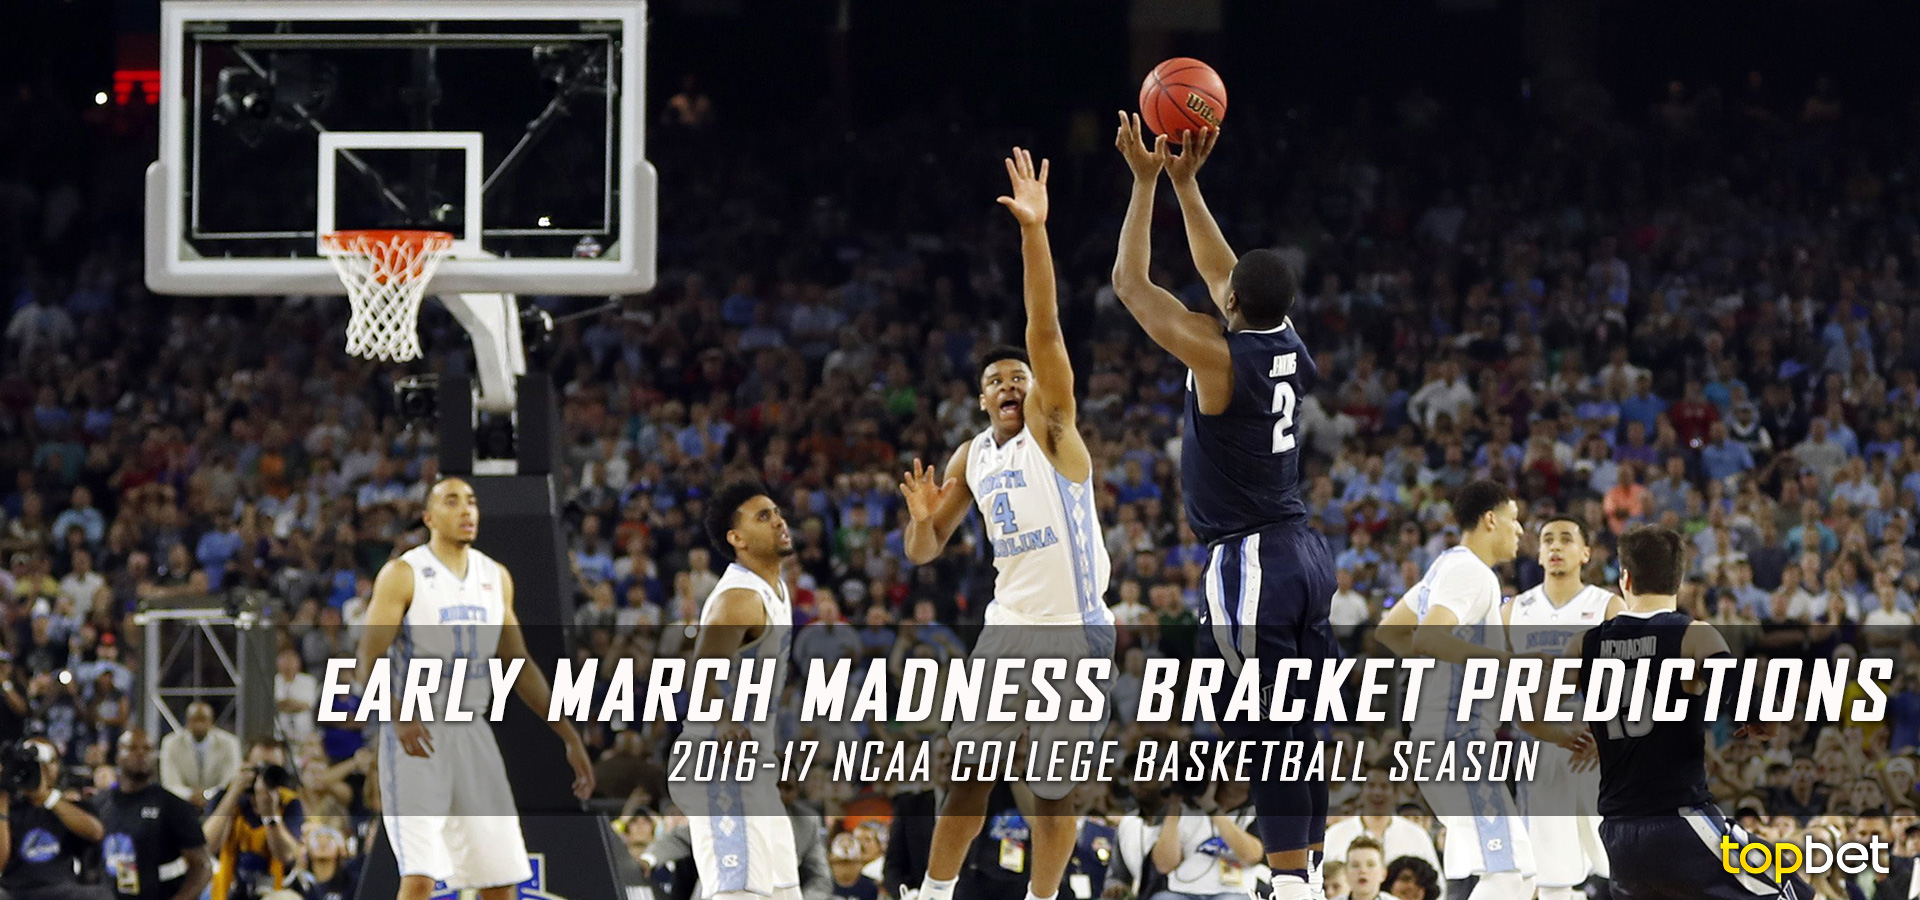 Early March Madness Predictions: 2016-17 NCAA Basketball